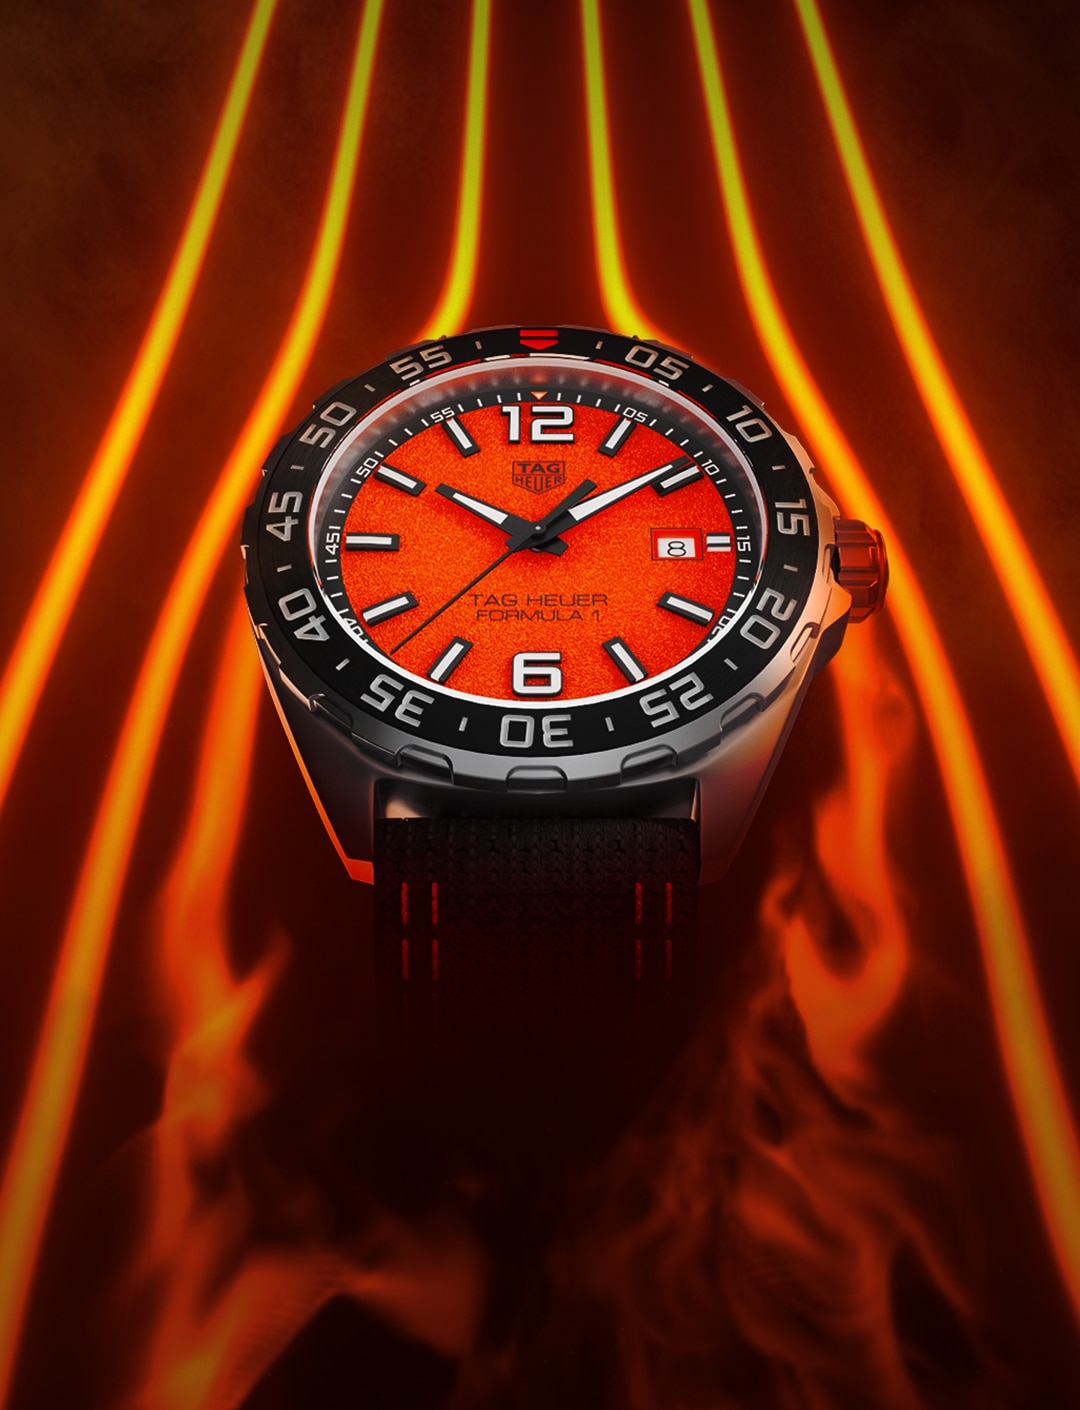 TAG Heuer by ohmyclock.com